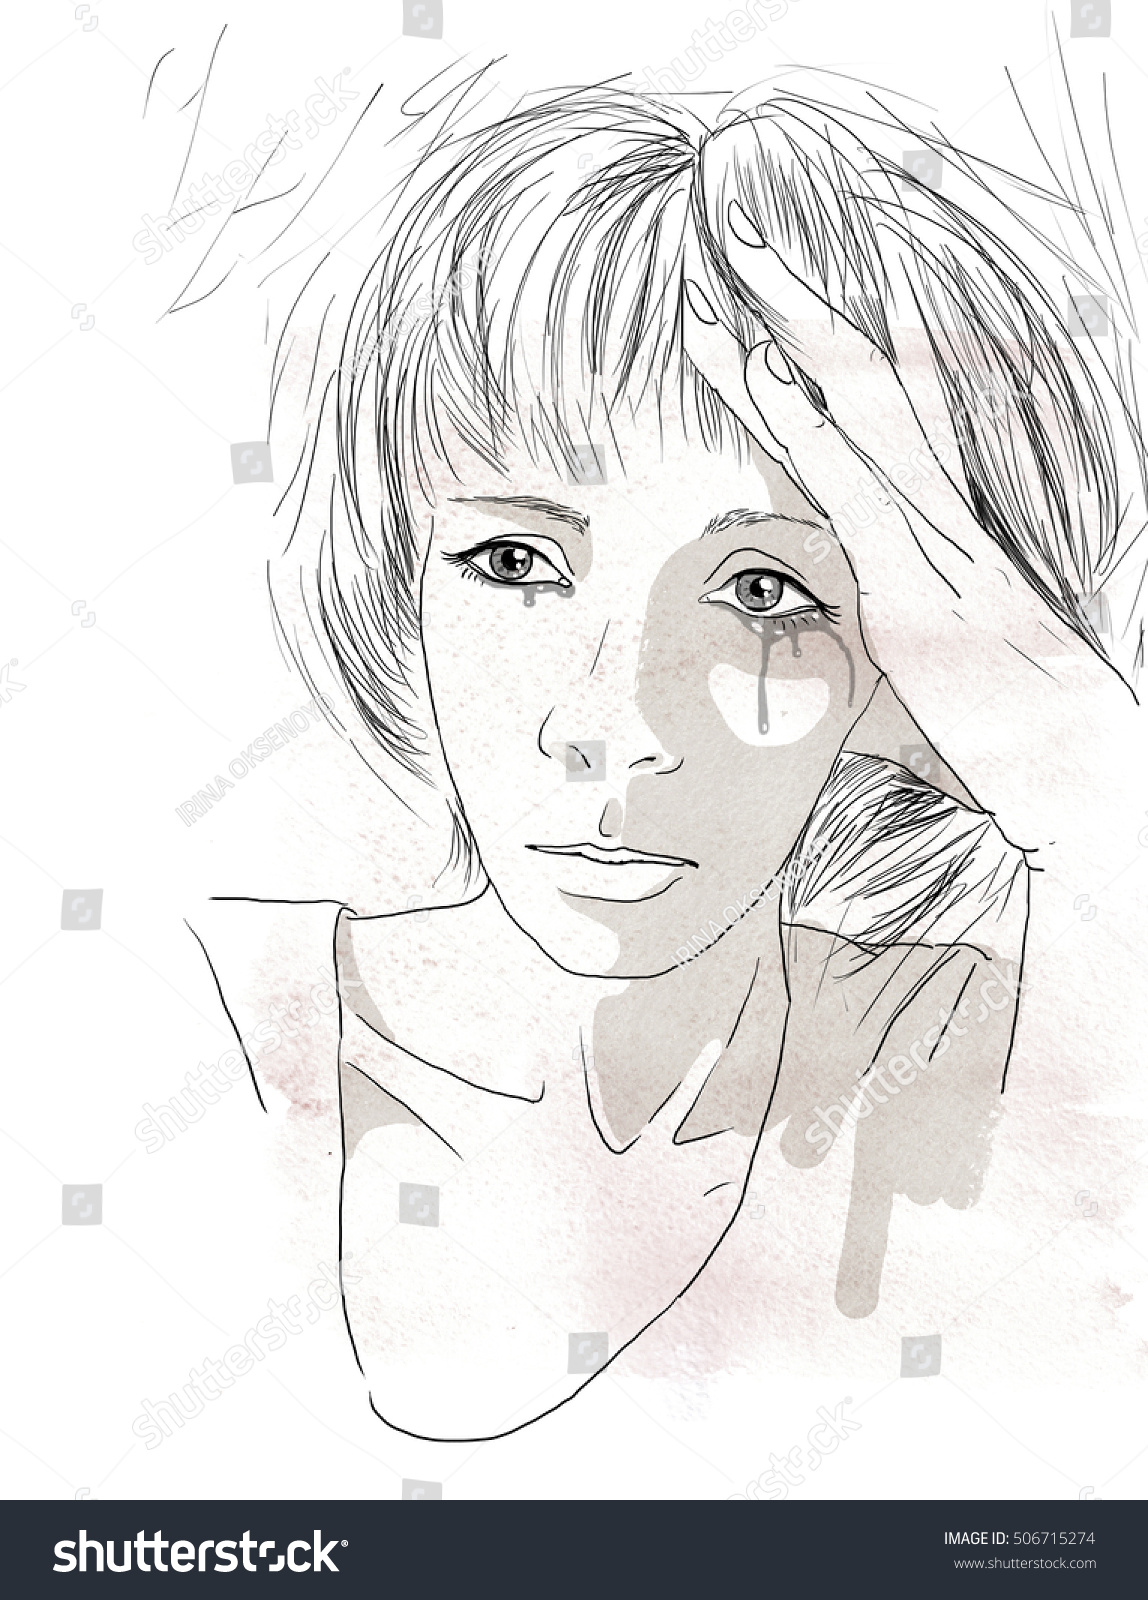 a portrait of a sad young woman crying drawn with black pen sketch